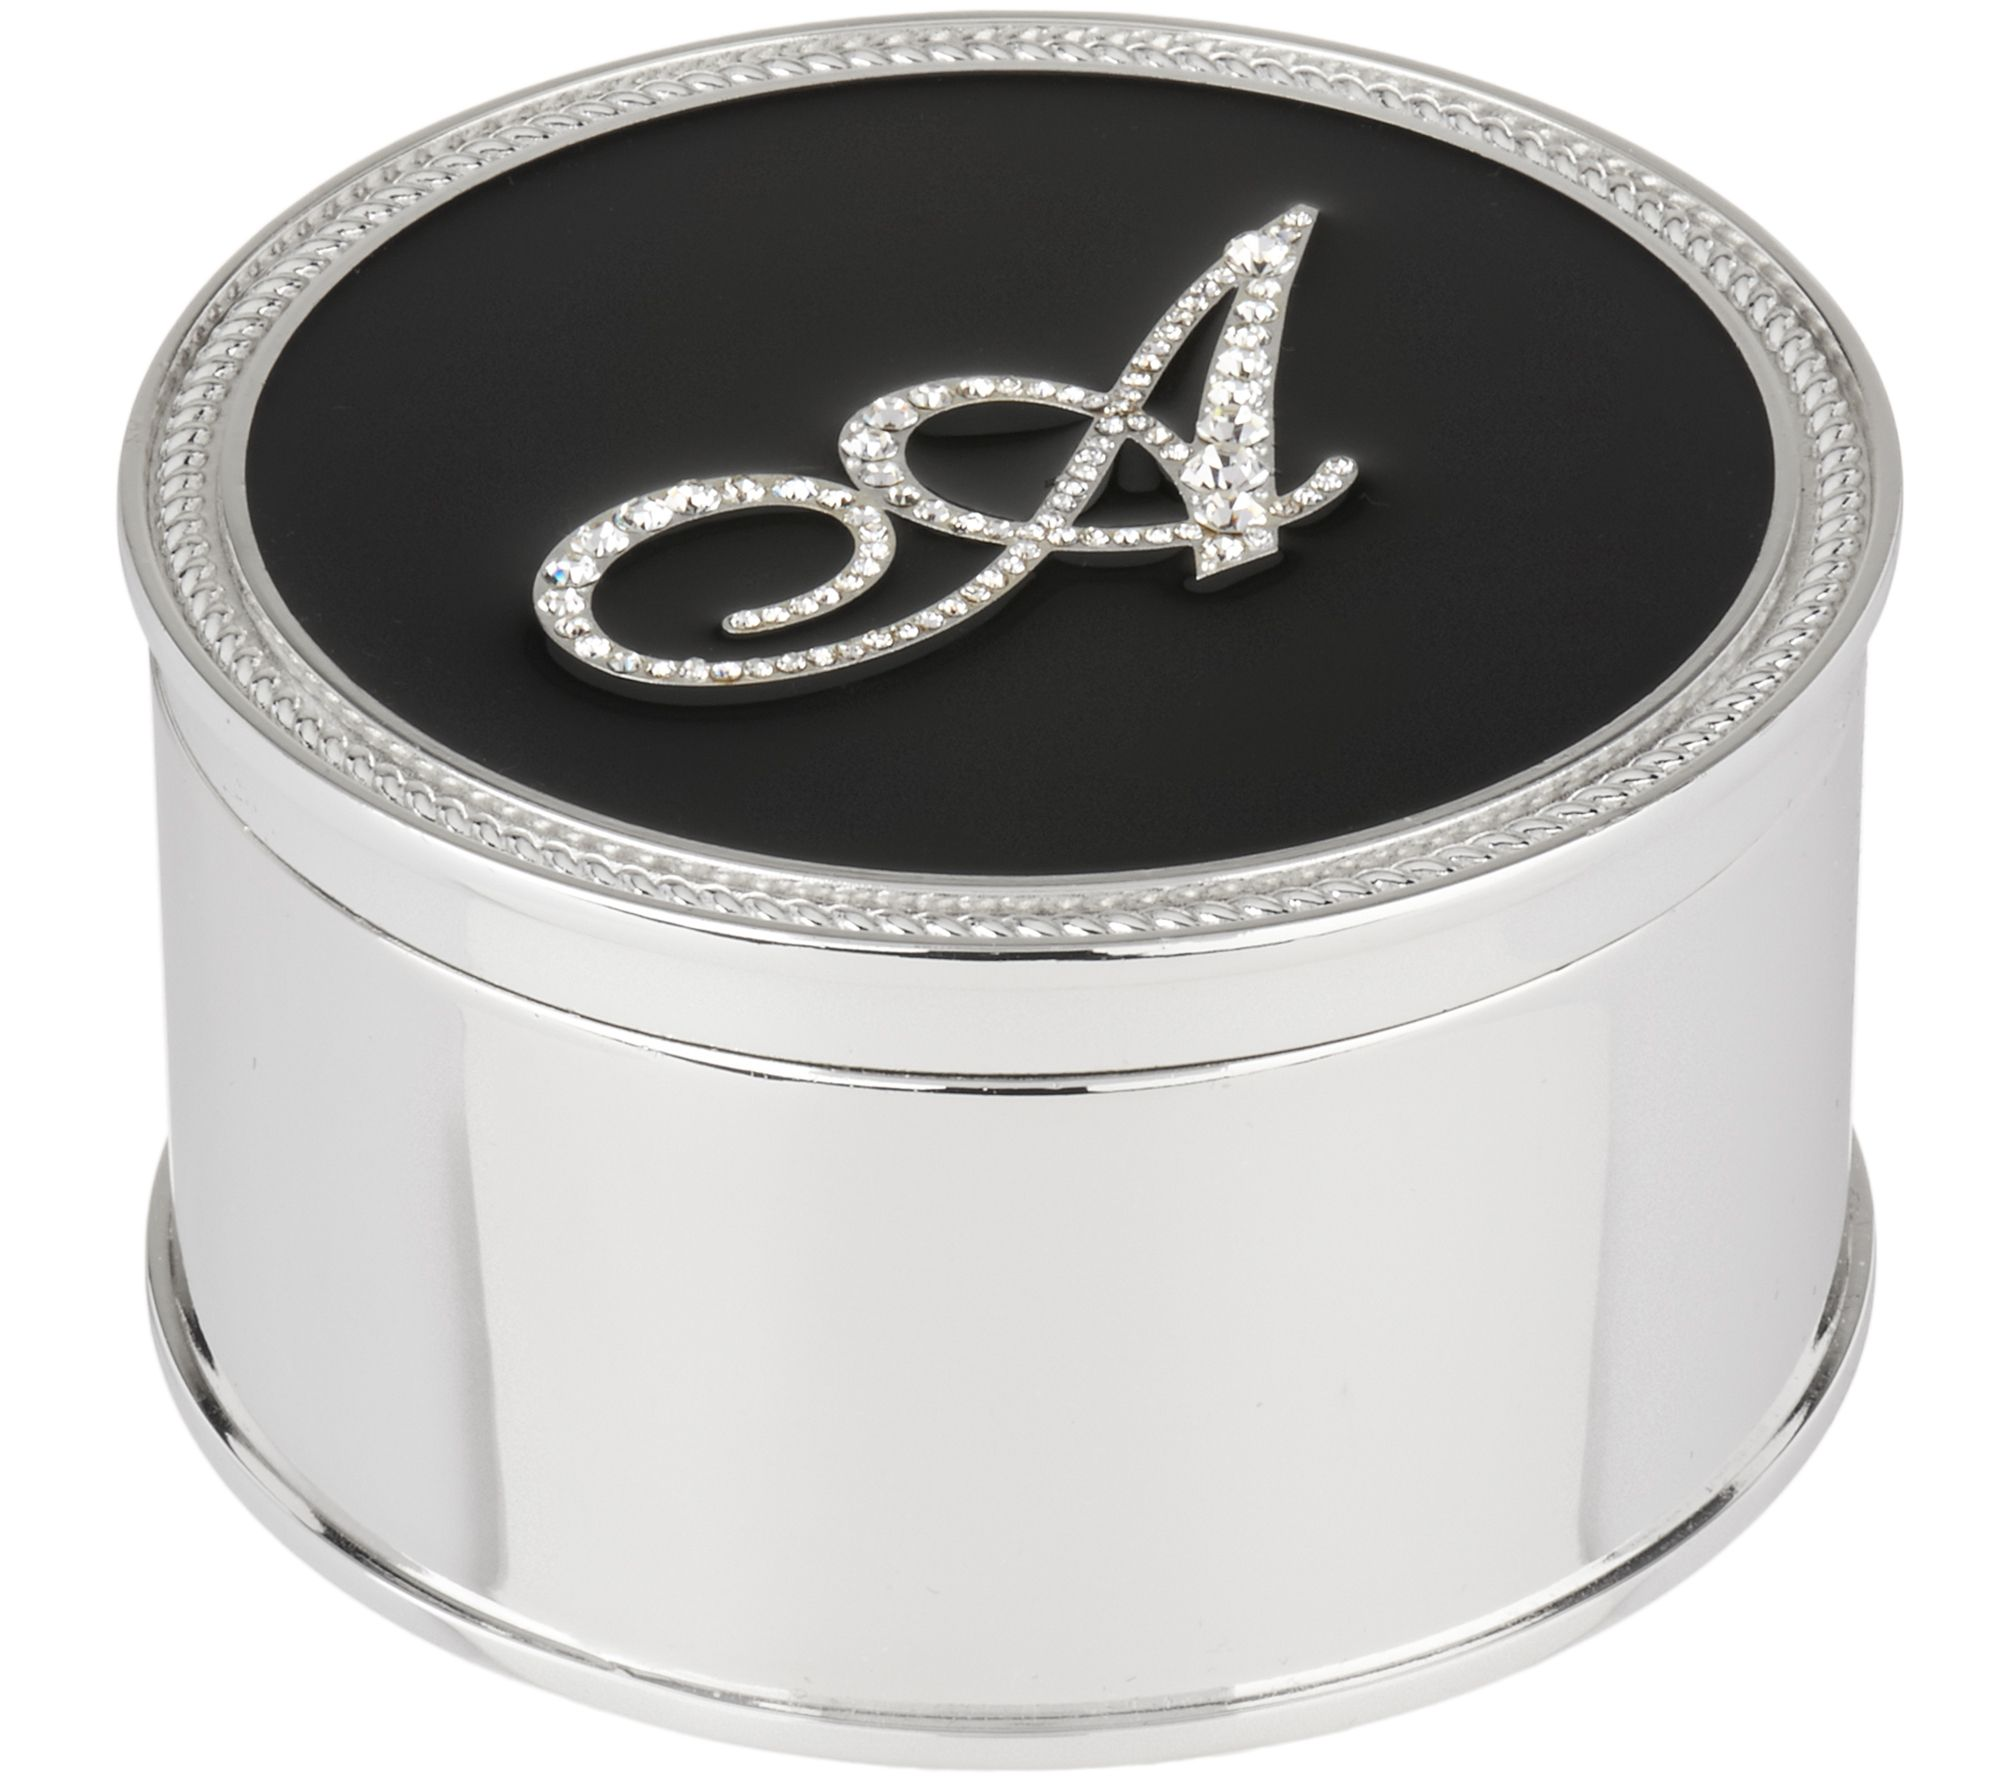 As Is Safekeeper Initial Jewelry Box wRope Trim by Lori Greiner